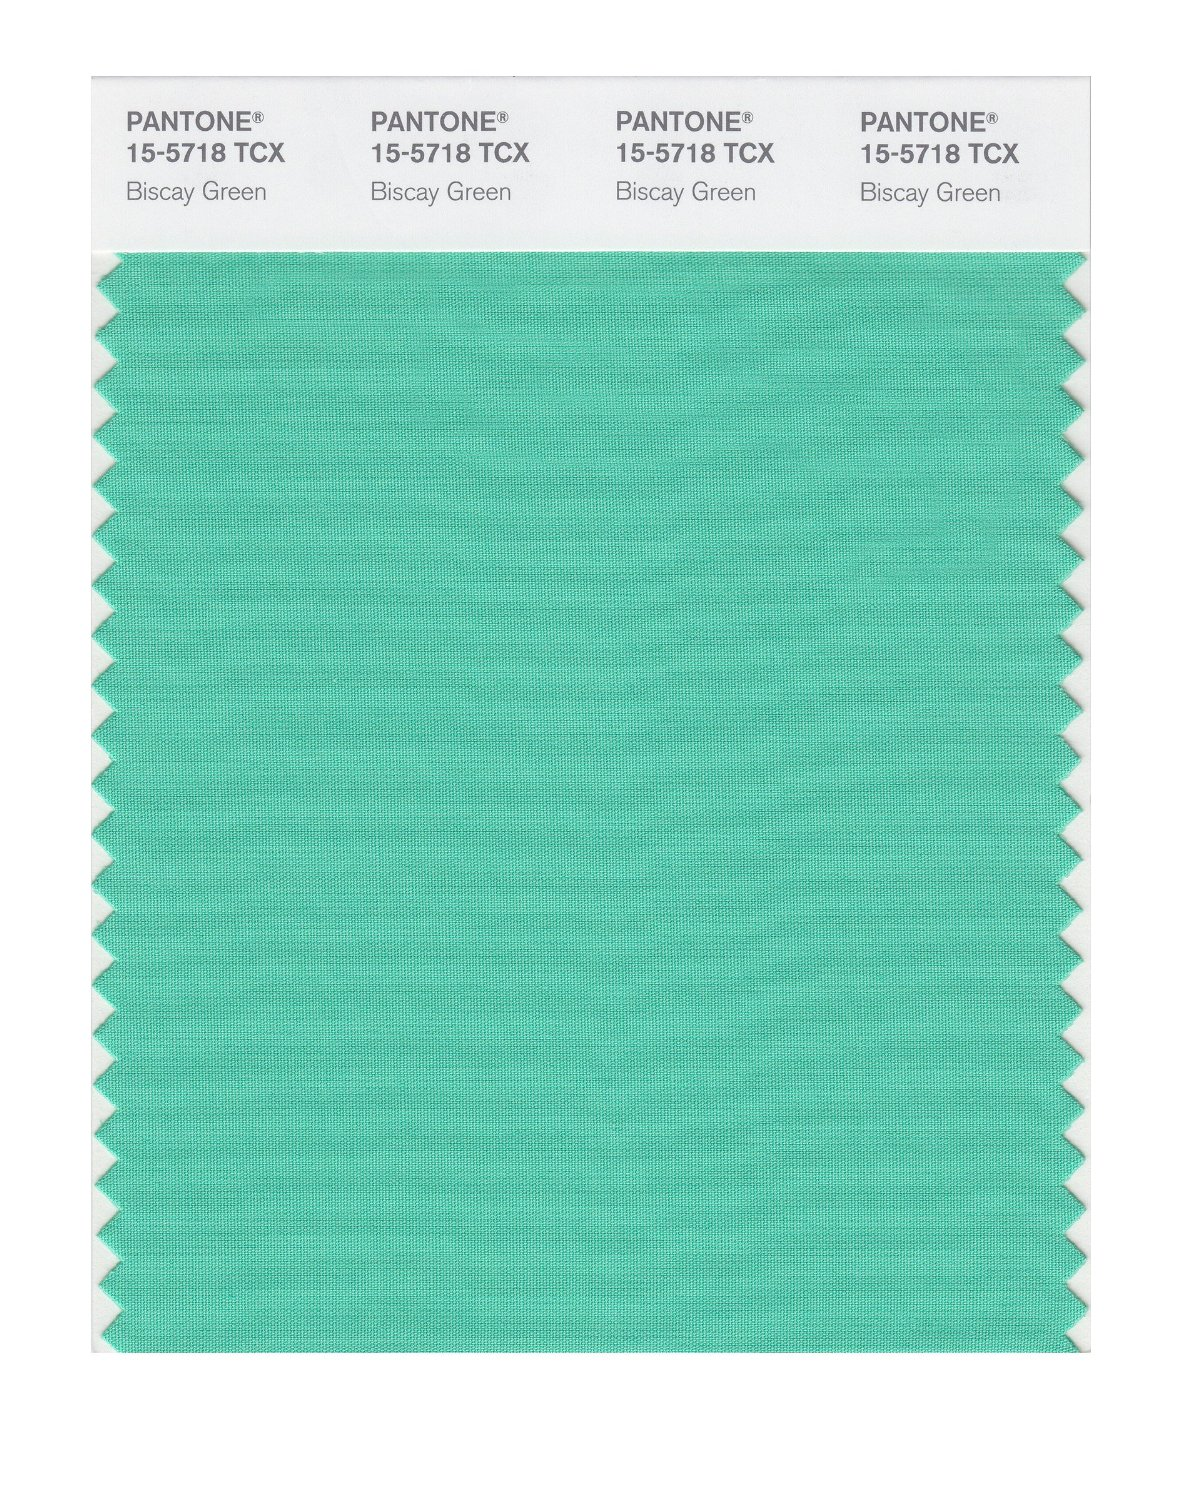 Pantone Smart Swatch 15-5718 Biscay Green